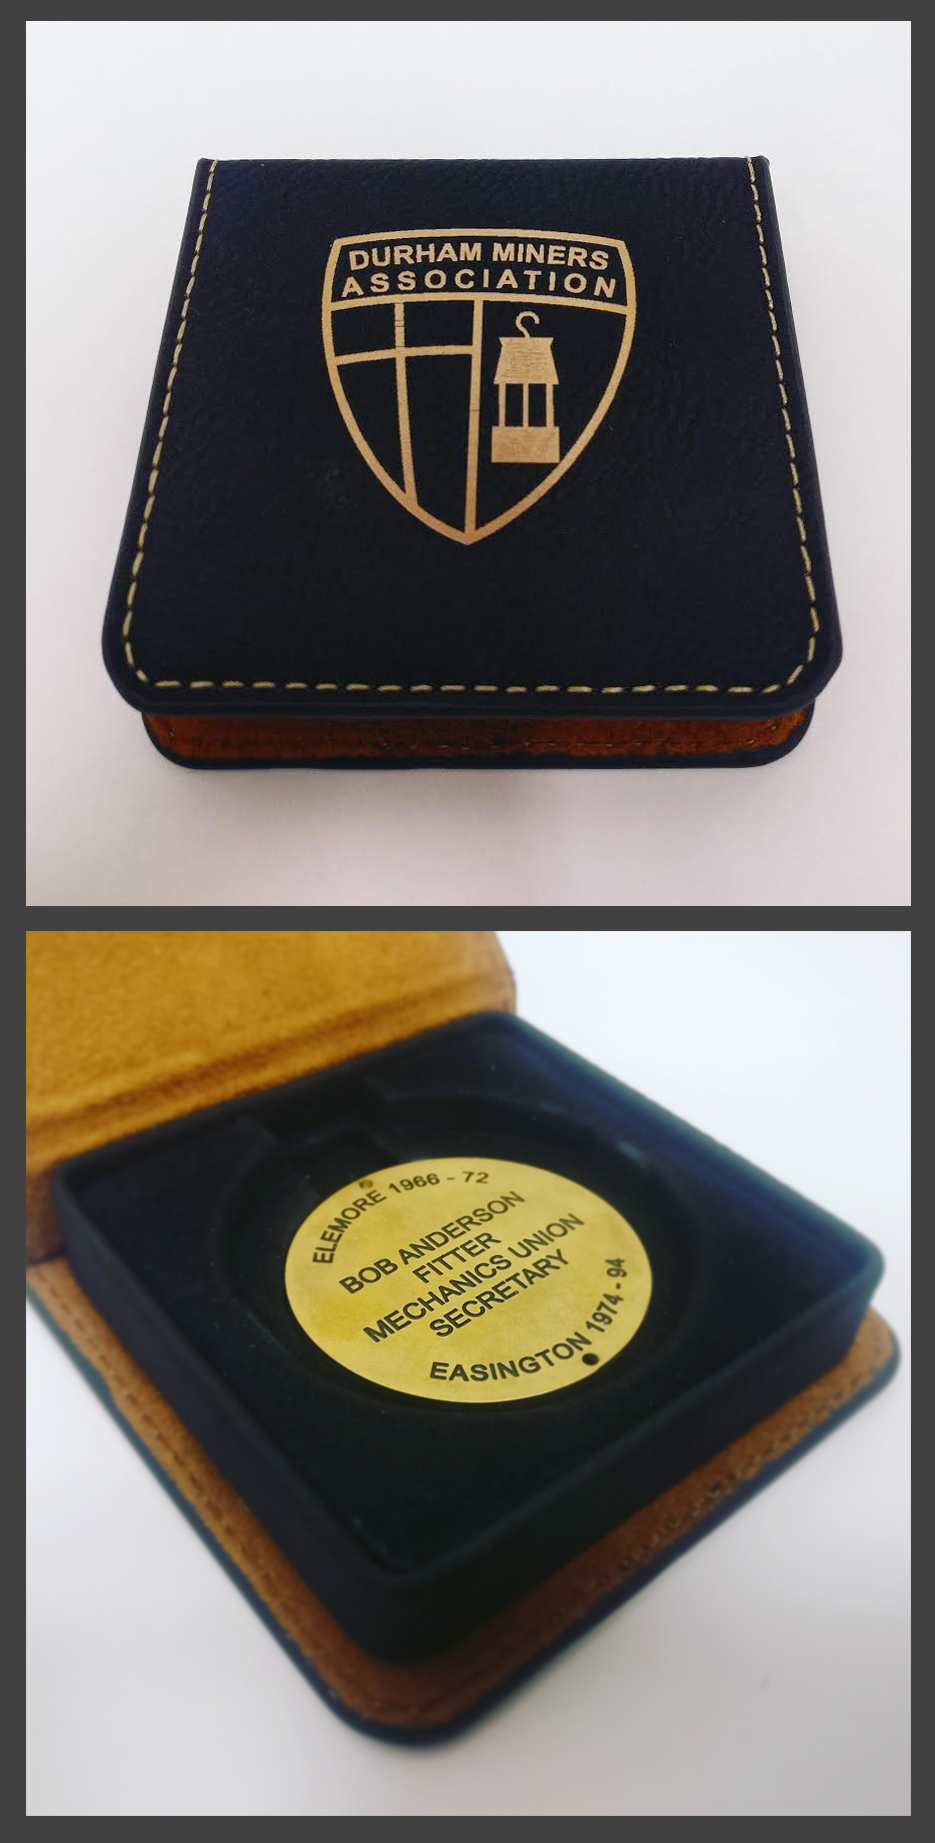 The engraved token complete with presentation case.